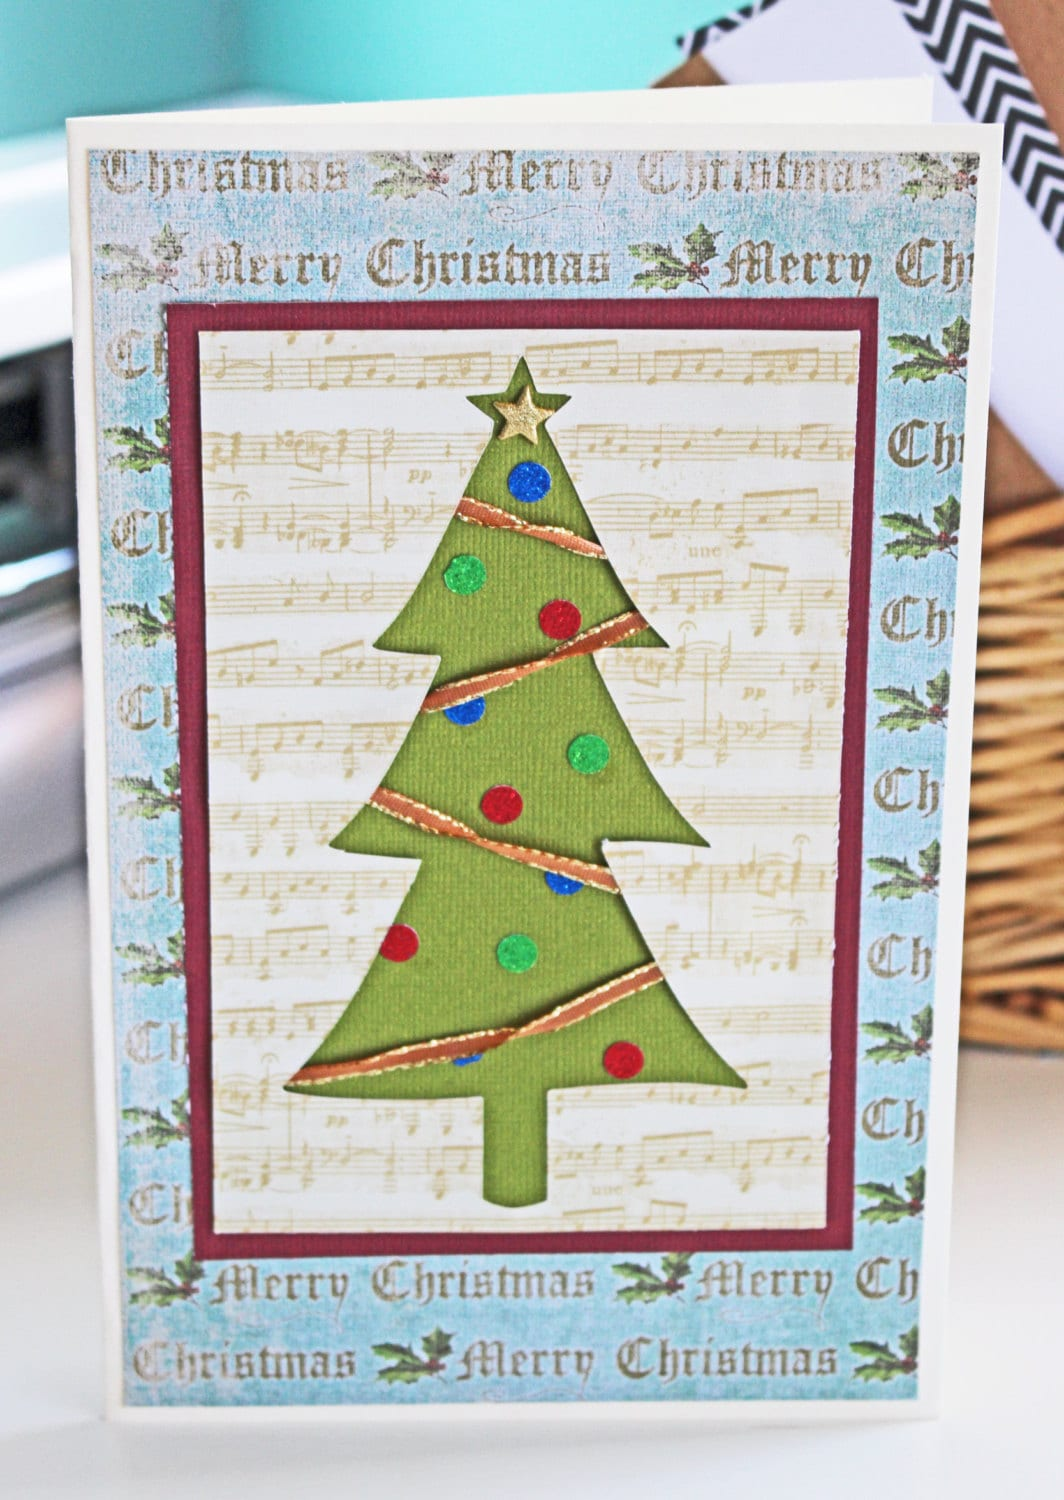 Christmas tree music notes greeting card holiday holidays christmas tree music notes greeting card holiday holidays ornaments merry star carrols carrolers christmas music greeting m4hsunfo